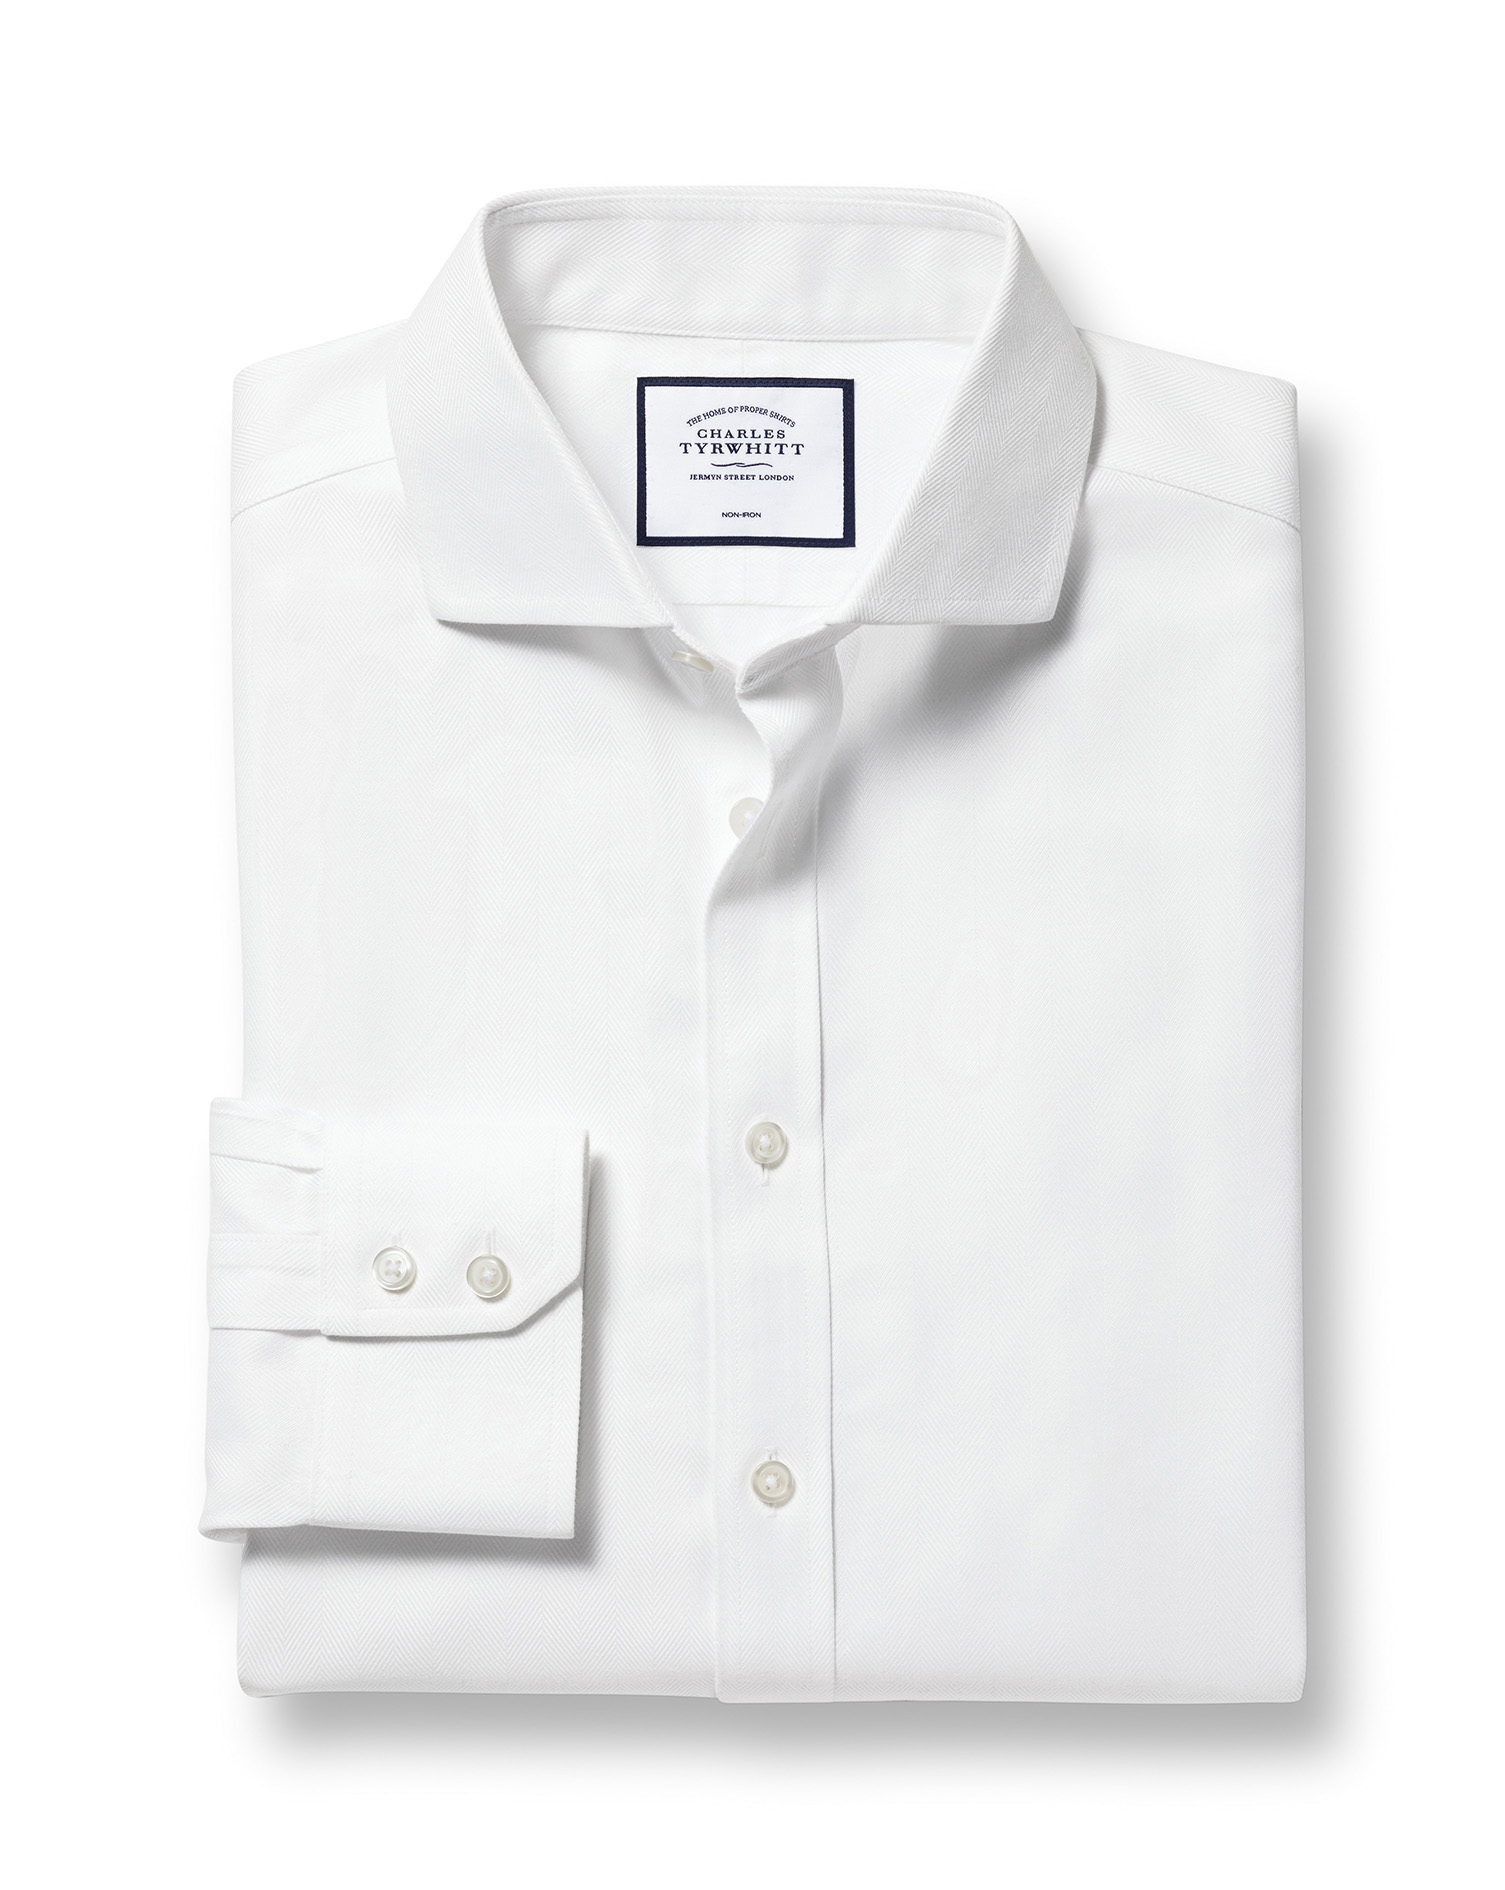 Slim Fit Cutaway Non-Iron Herringbone White Cotton Formal Shirt Single Cuff Size 15.5/34 by Charles